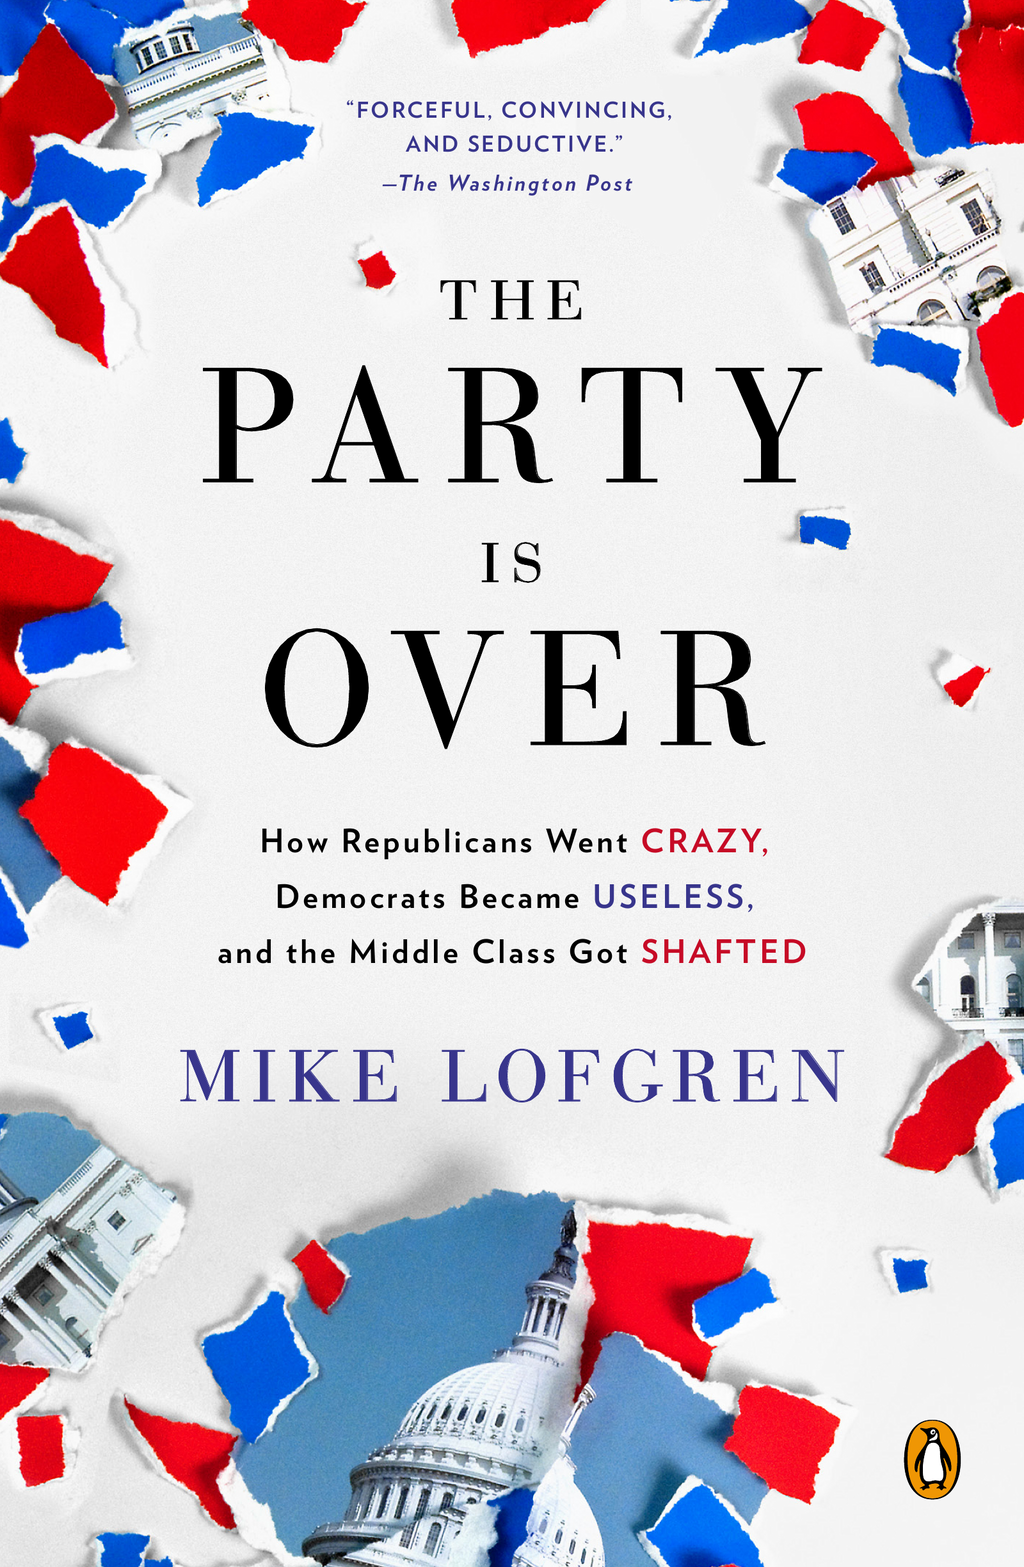 The Party Is Over How Republicans Went Crazy,  Democrats Became Useless,  and the Middle Class Got Shafted